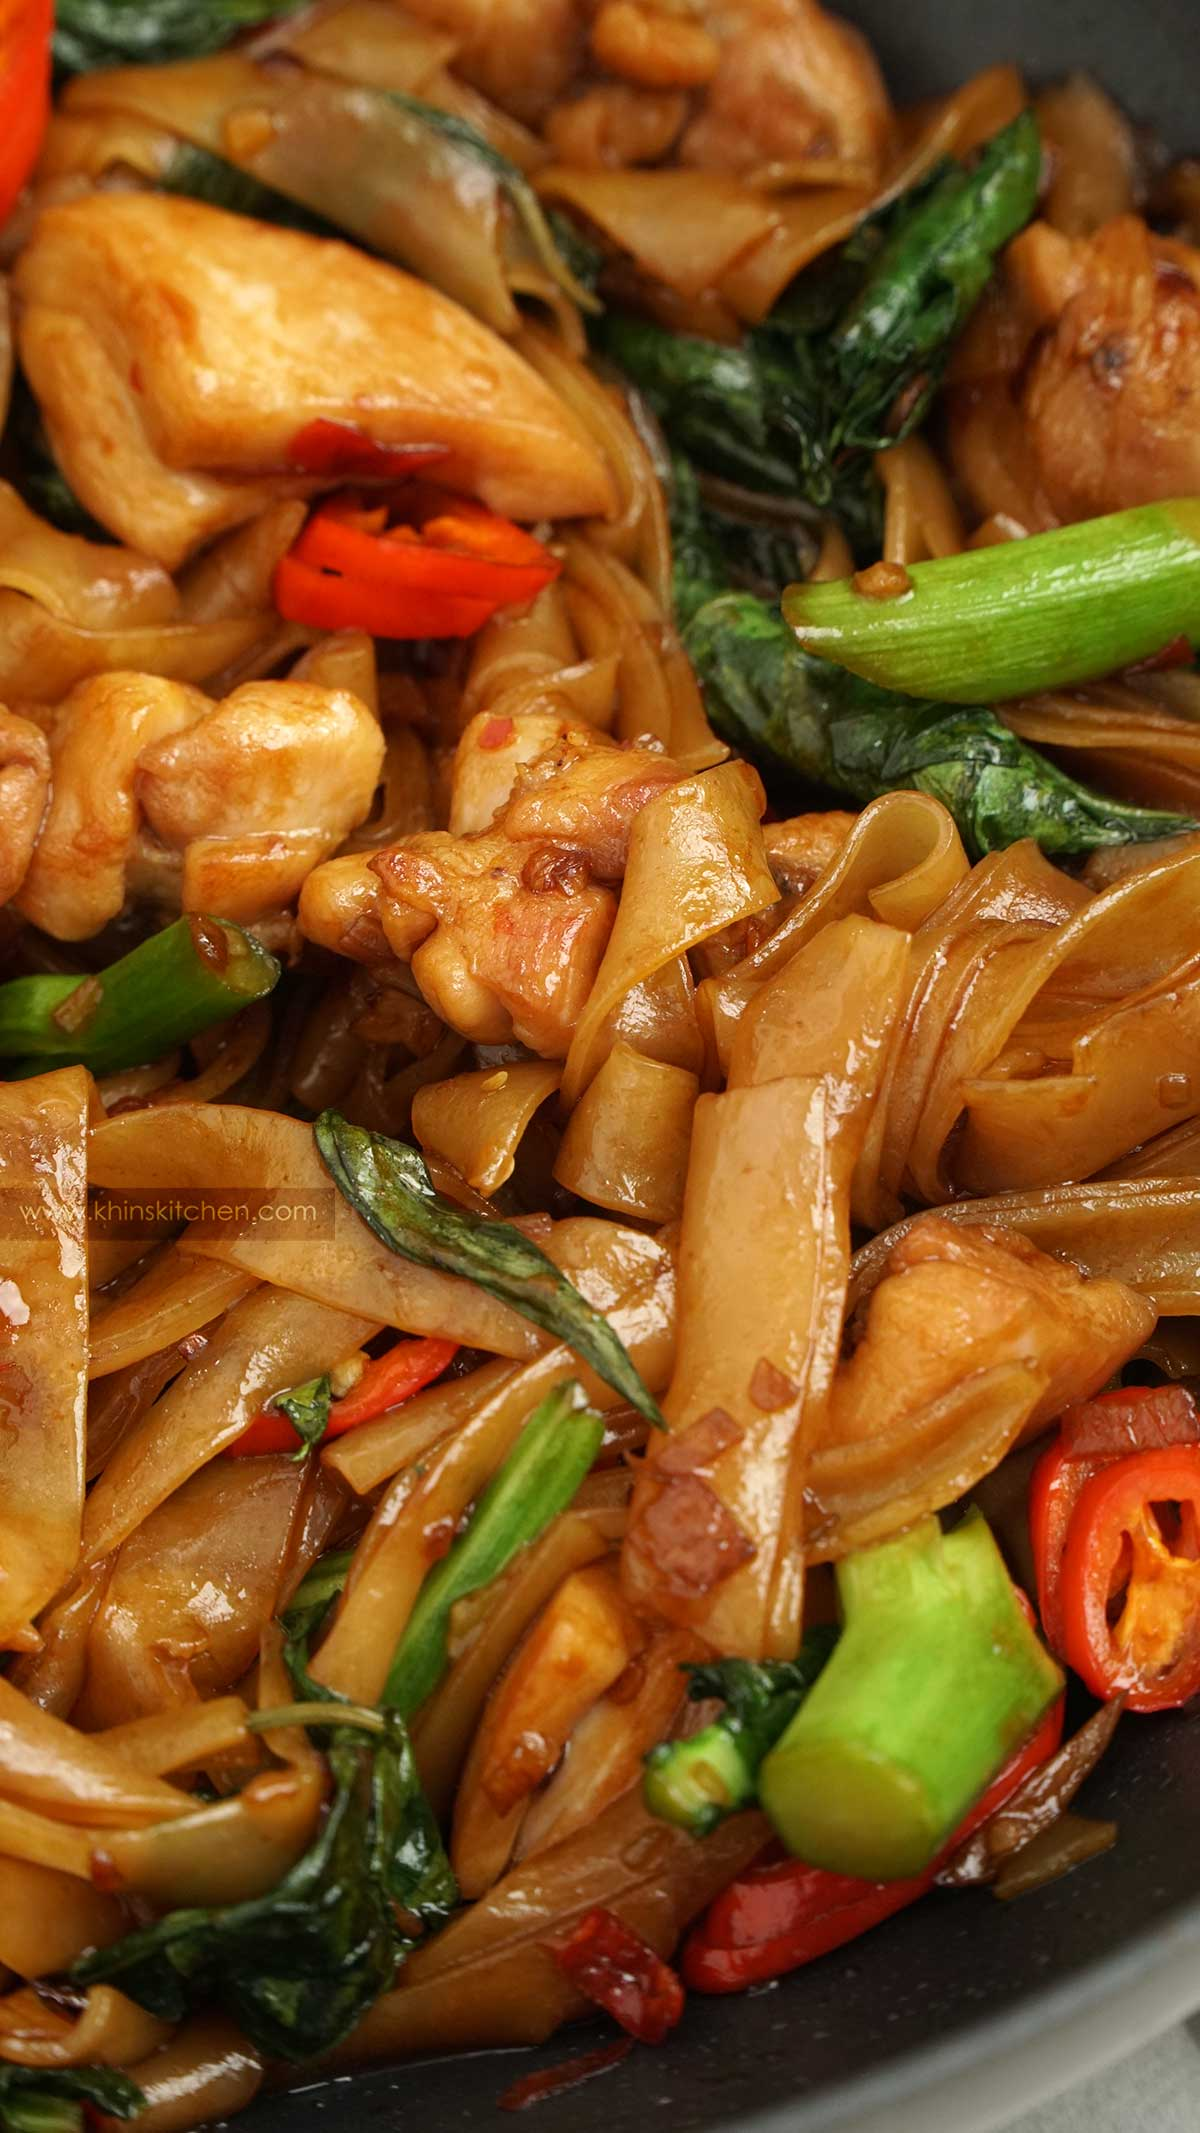 close up view of thai noodles stir fry in the pan.